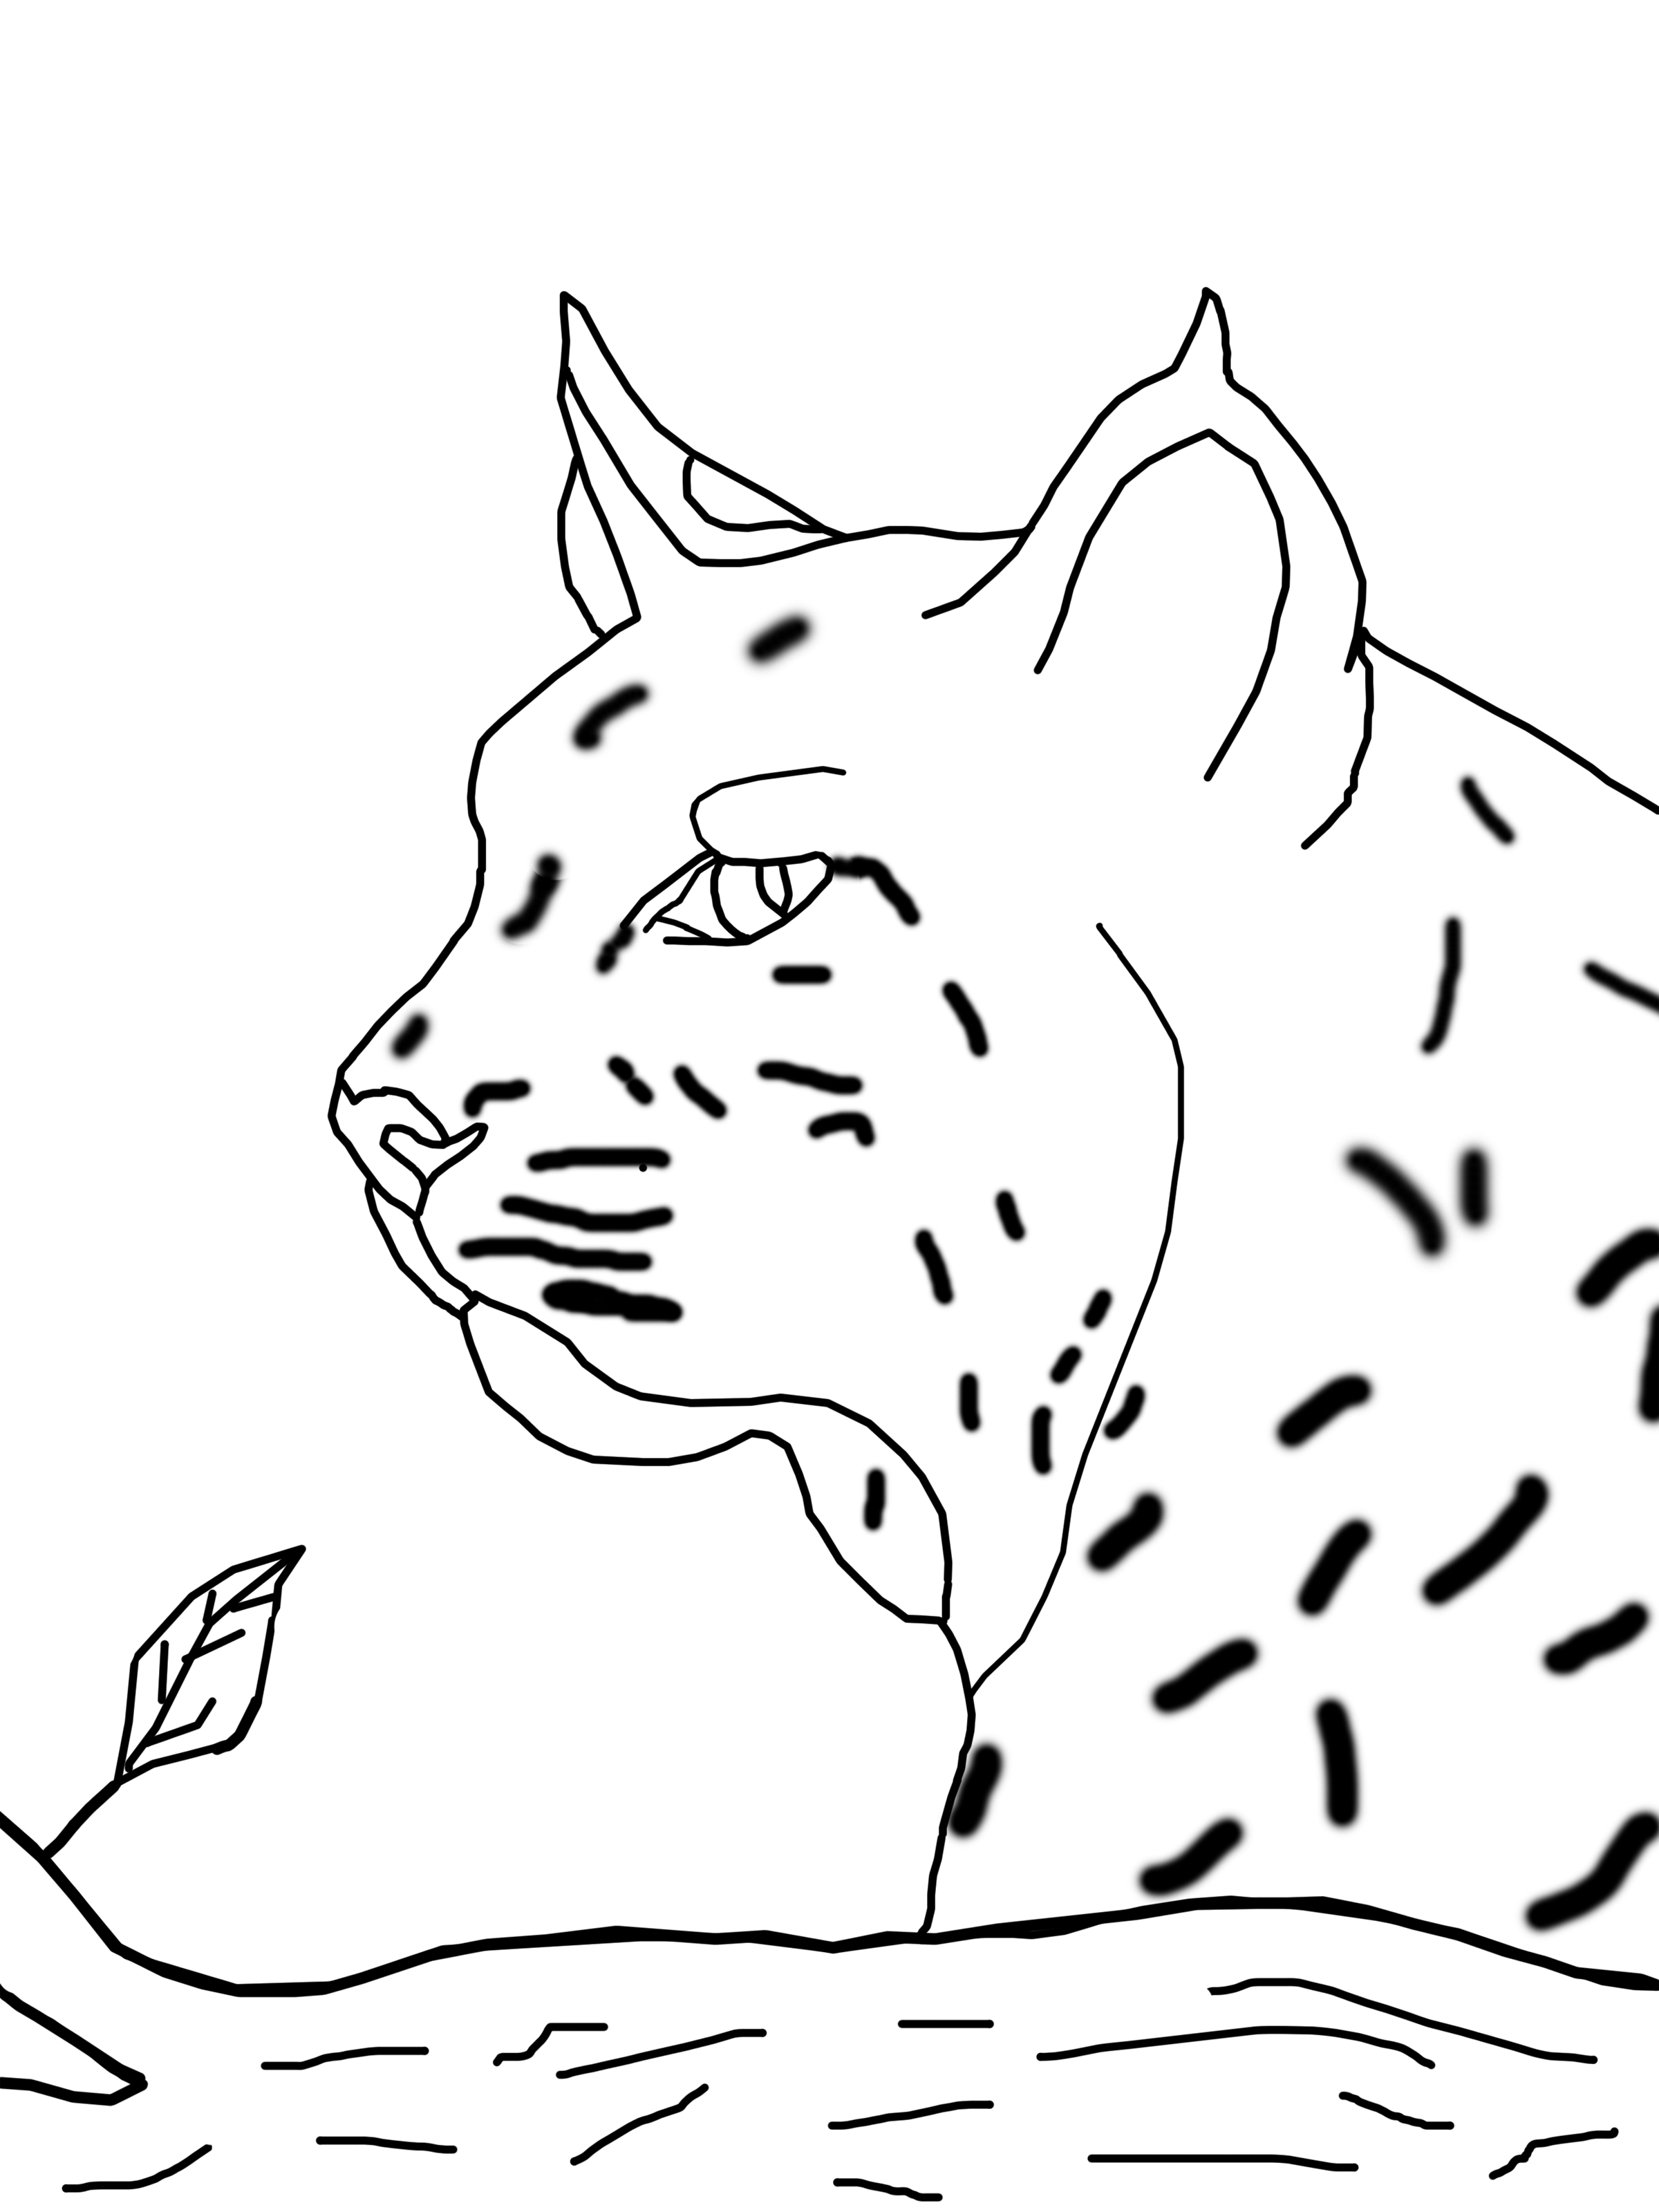 printable coloring book pages cartoon coloring pages to download and print for free pages book printable coloring